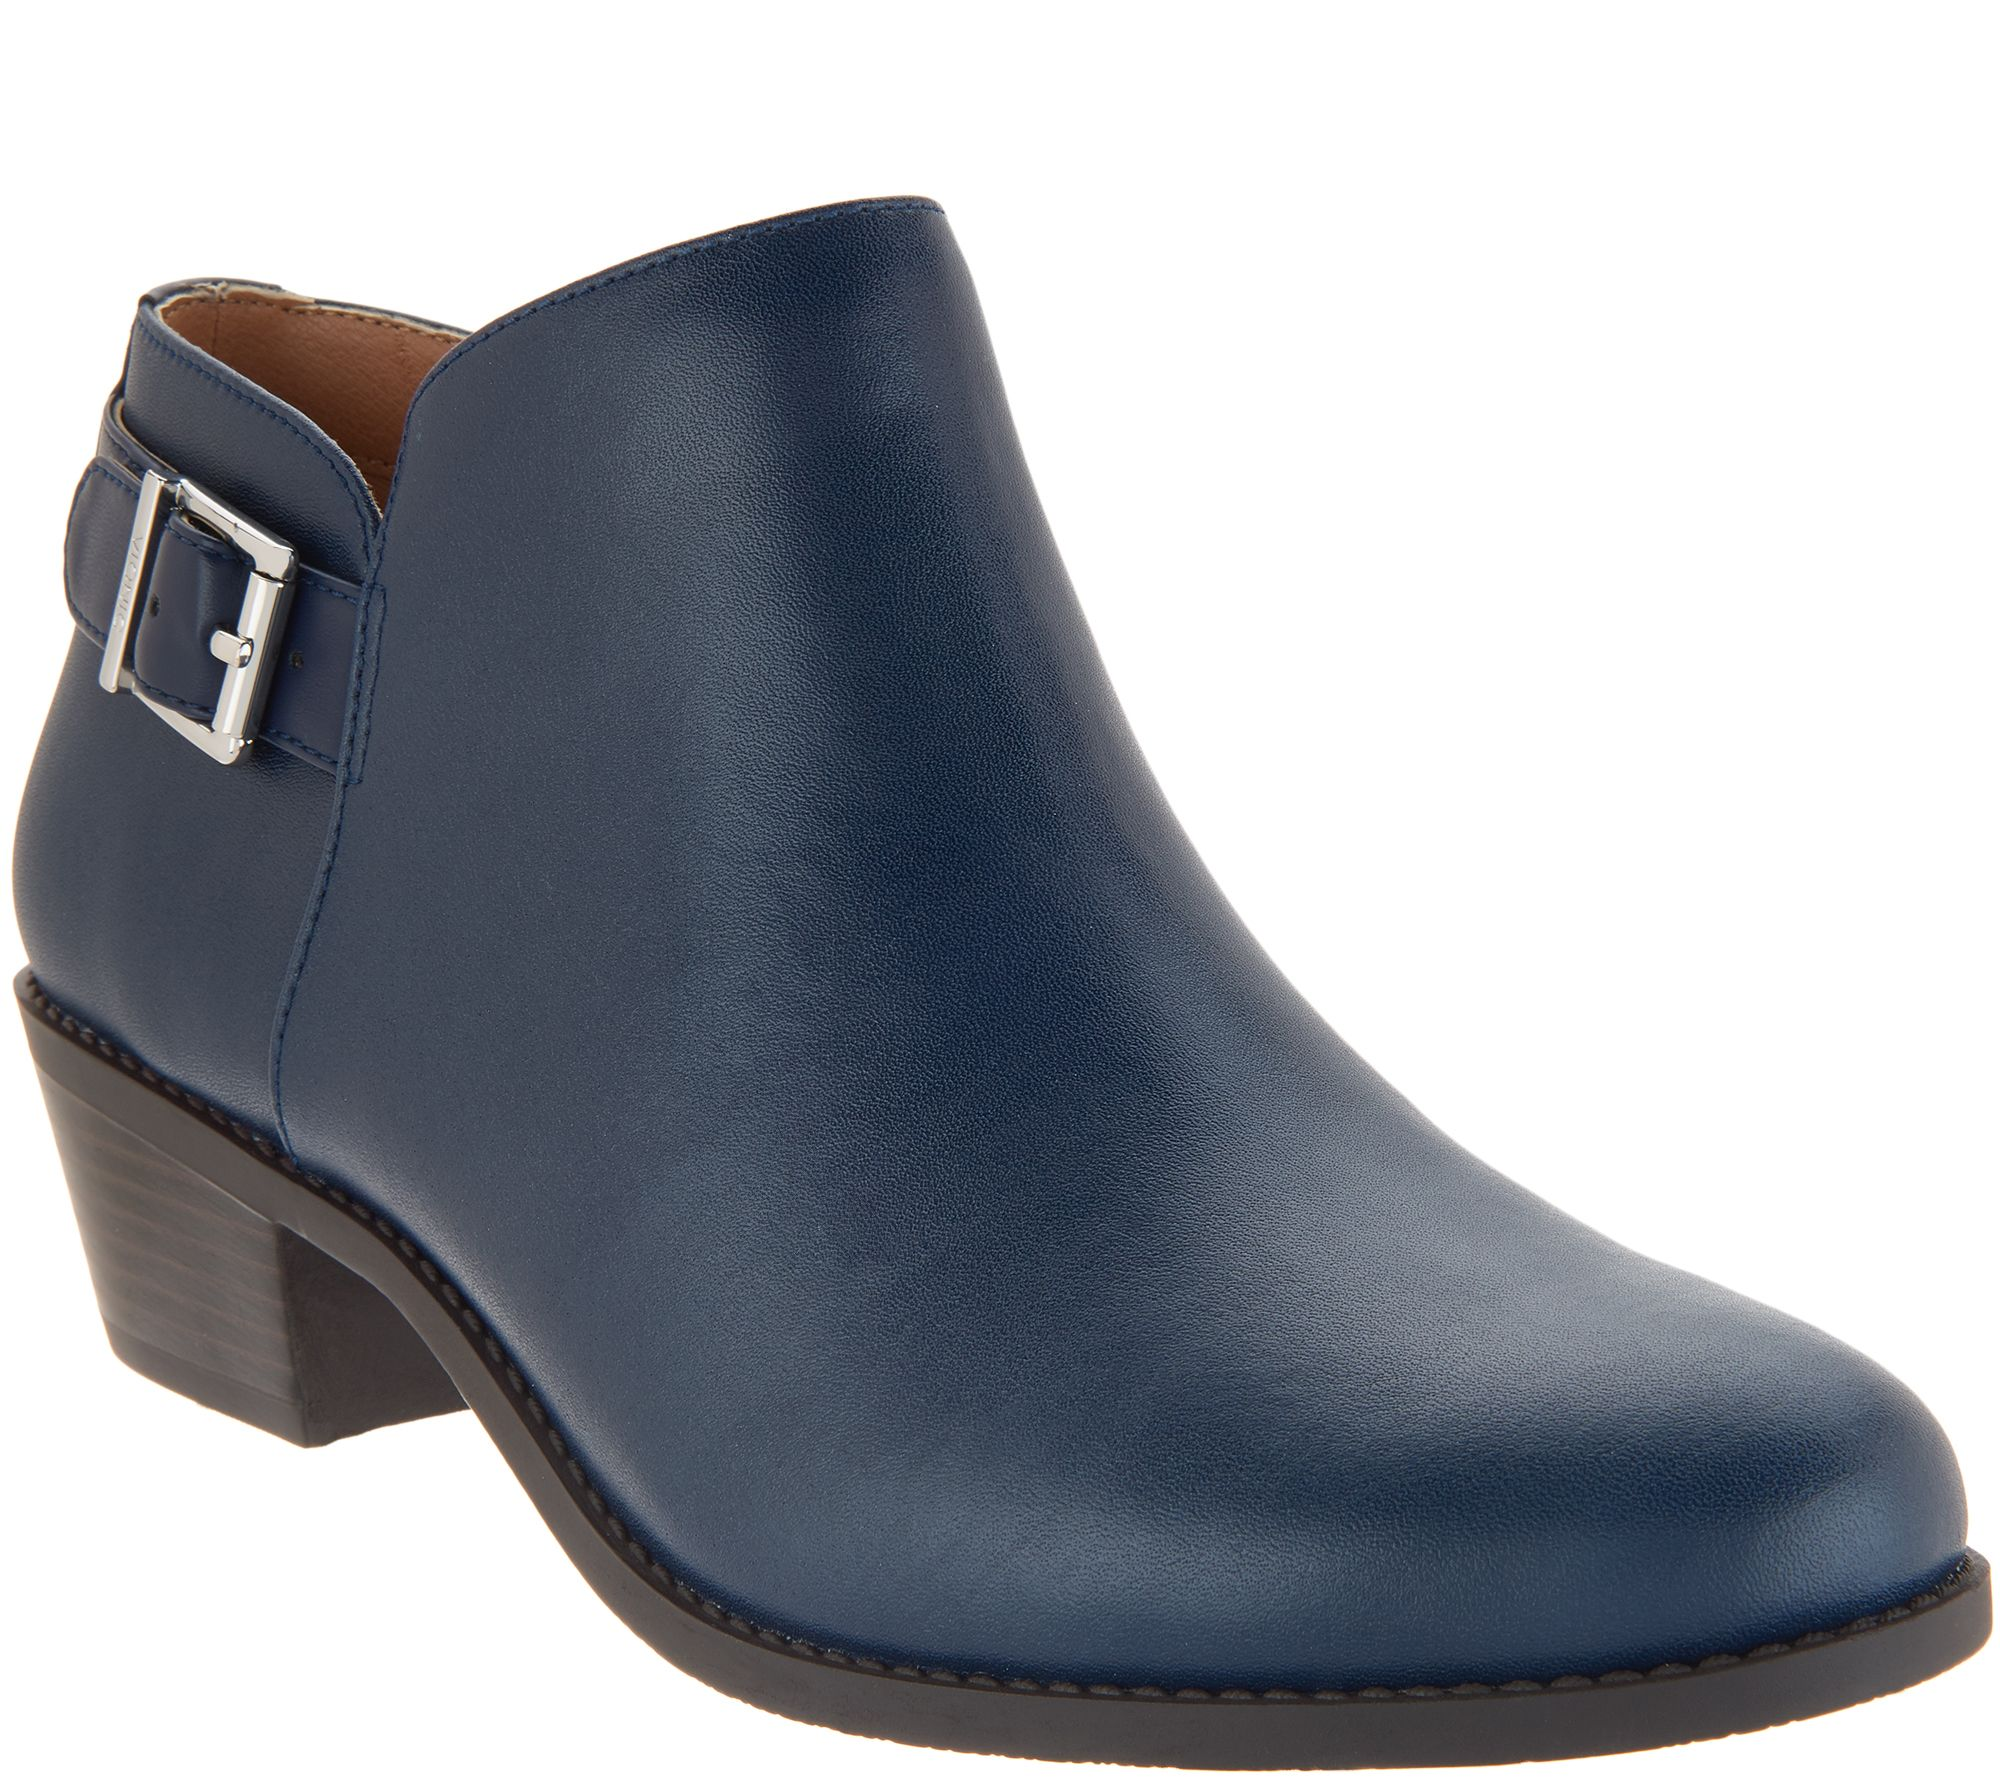 6aa58a9f66ae Vionic Ankle Boots with Buckle - Millie - Page 1 — QVC.com